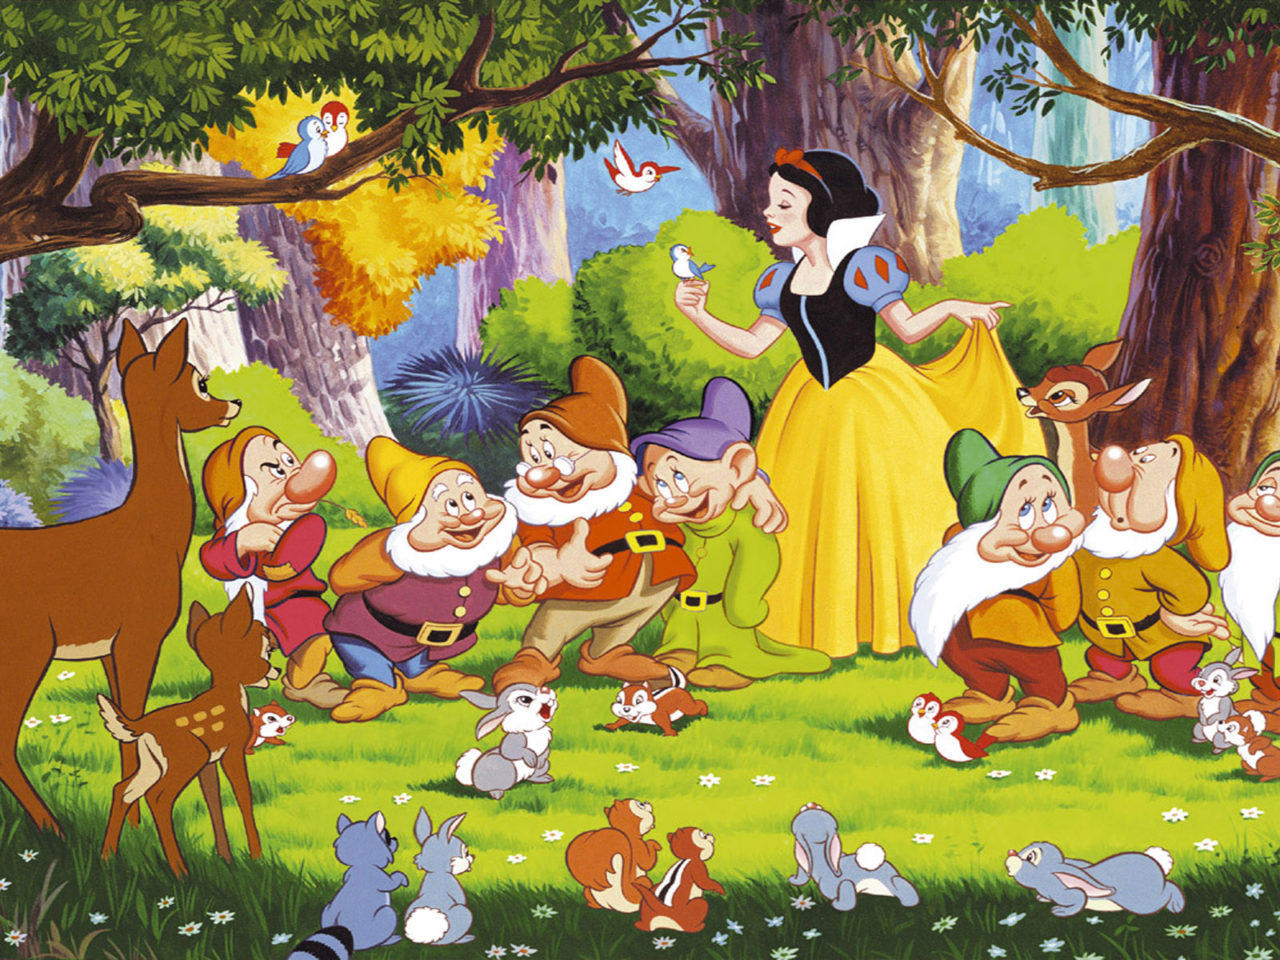 Wallpapers Cars Disney Hd Snow White Seven Dwarfs Bambi And The Animals From The